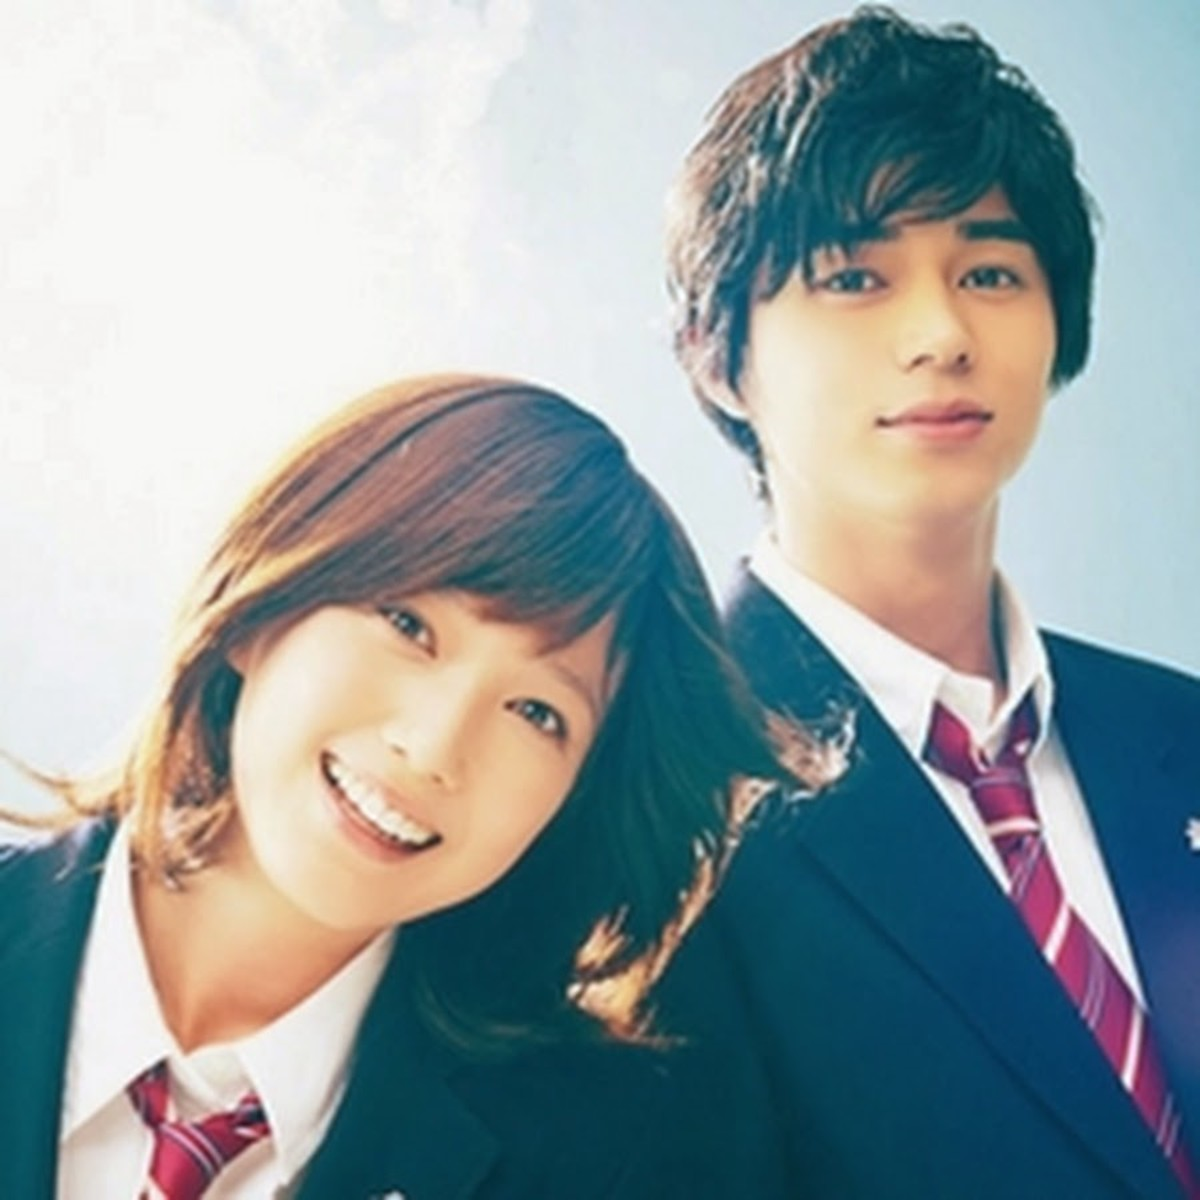 Top 15 Live Action Shoujo Romance Movies